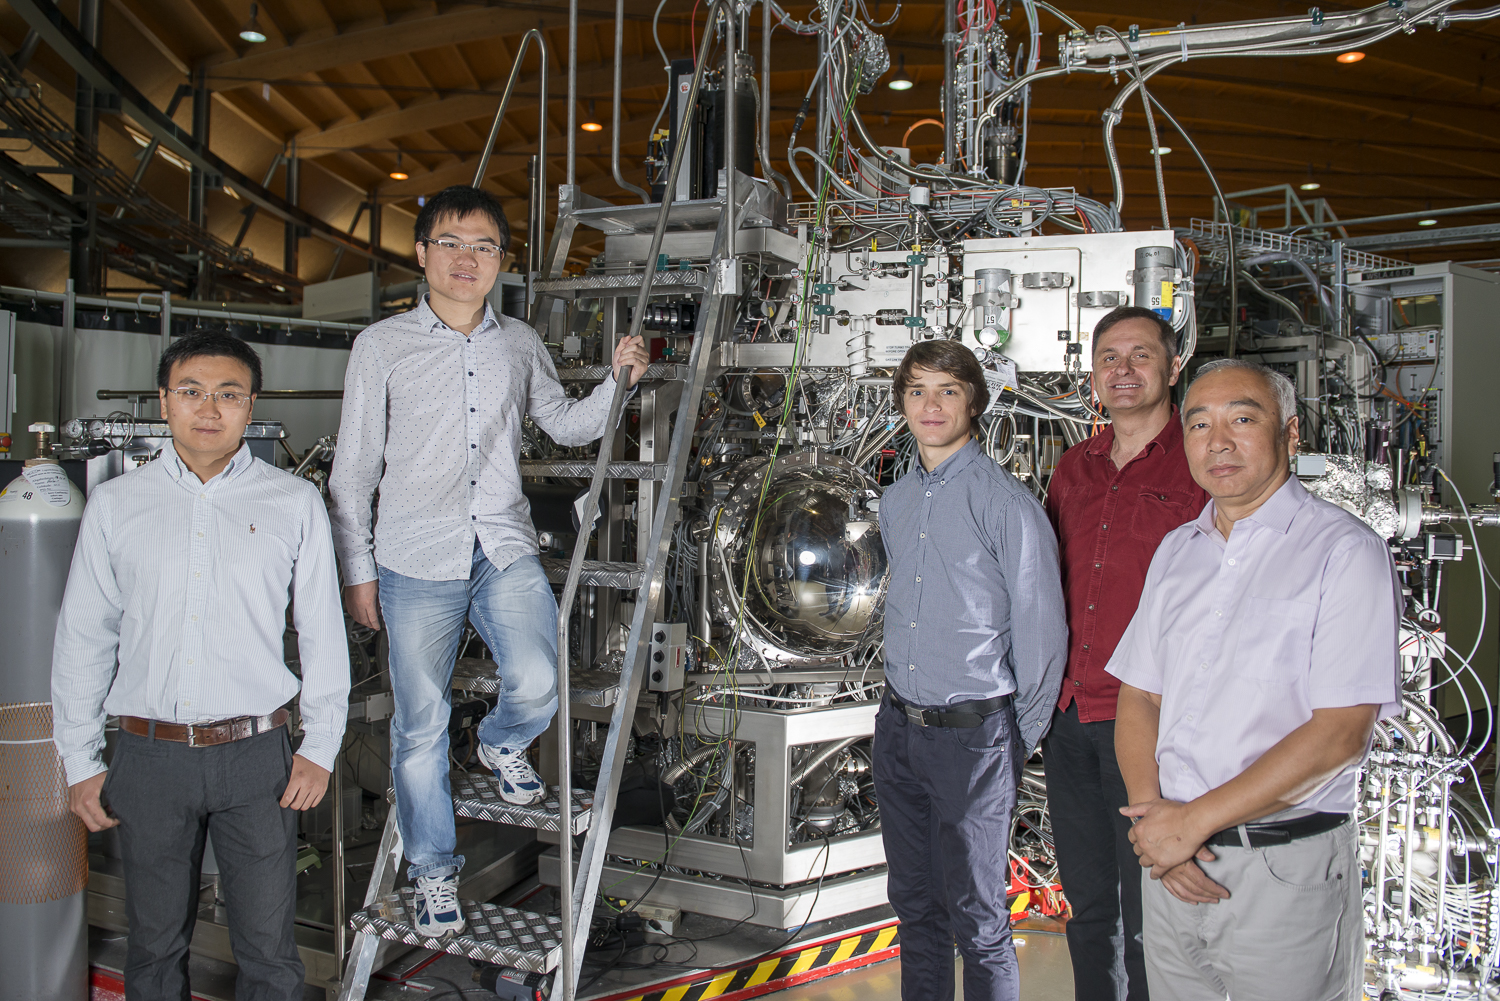 Members of the team from PSI that has just discovered the Weyl fermion. From left to right: Xu Nan, Lyu Baiqing, Christian Matt, Vladimir Strokov and Ming Shi (study head). (Photo: Paul Scherrer Institute/Mahir Dzambegovic)